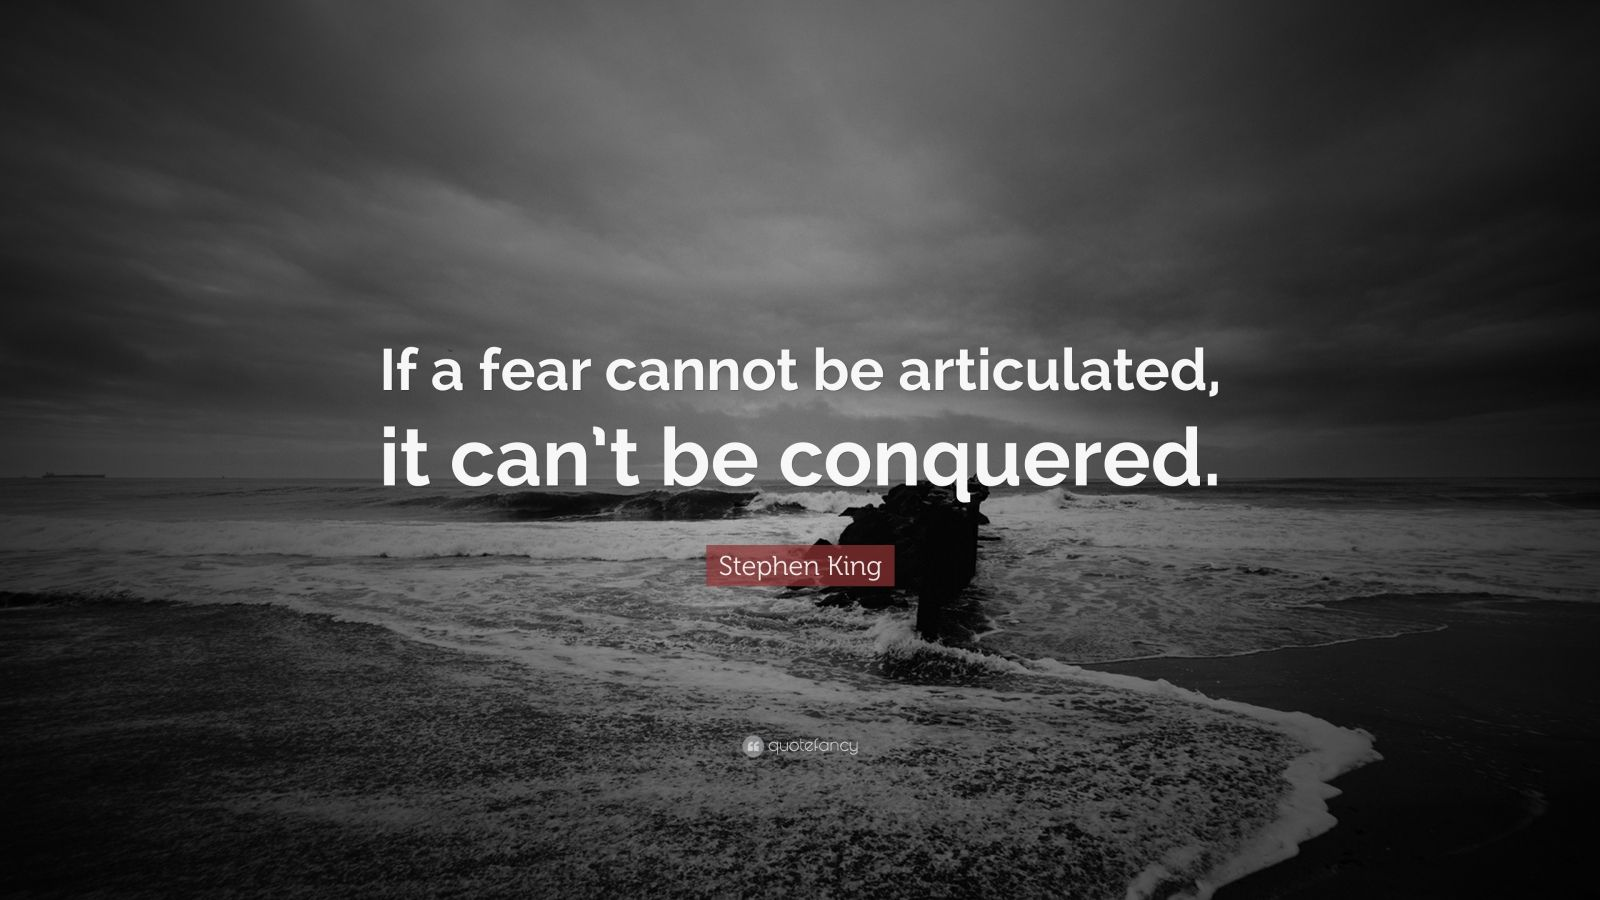 """Stephen King Quote: """"If a fear cannot be articulated, it can't be conquered."""""""